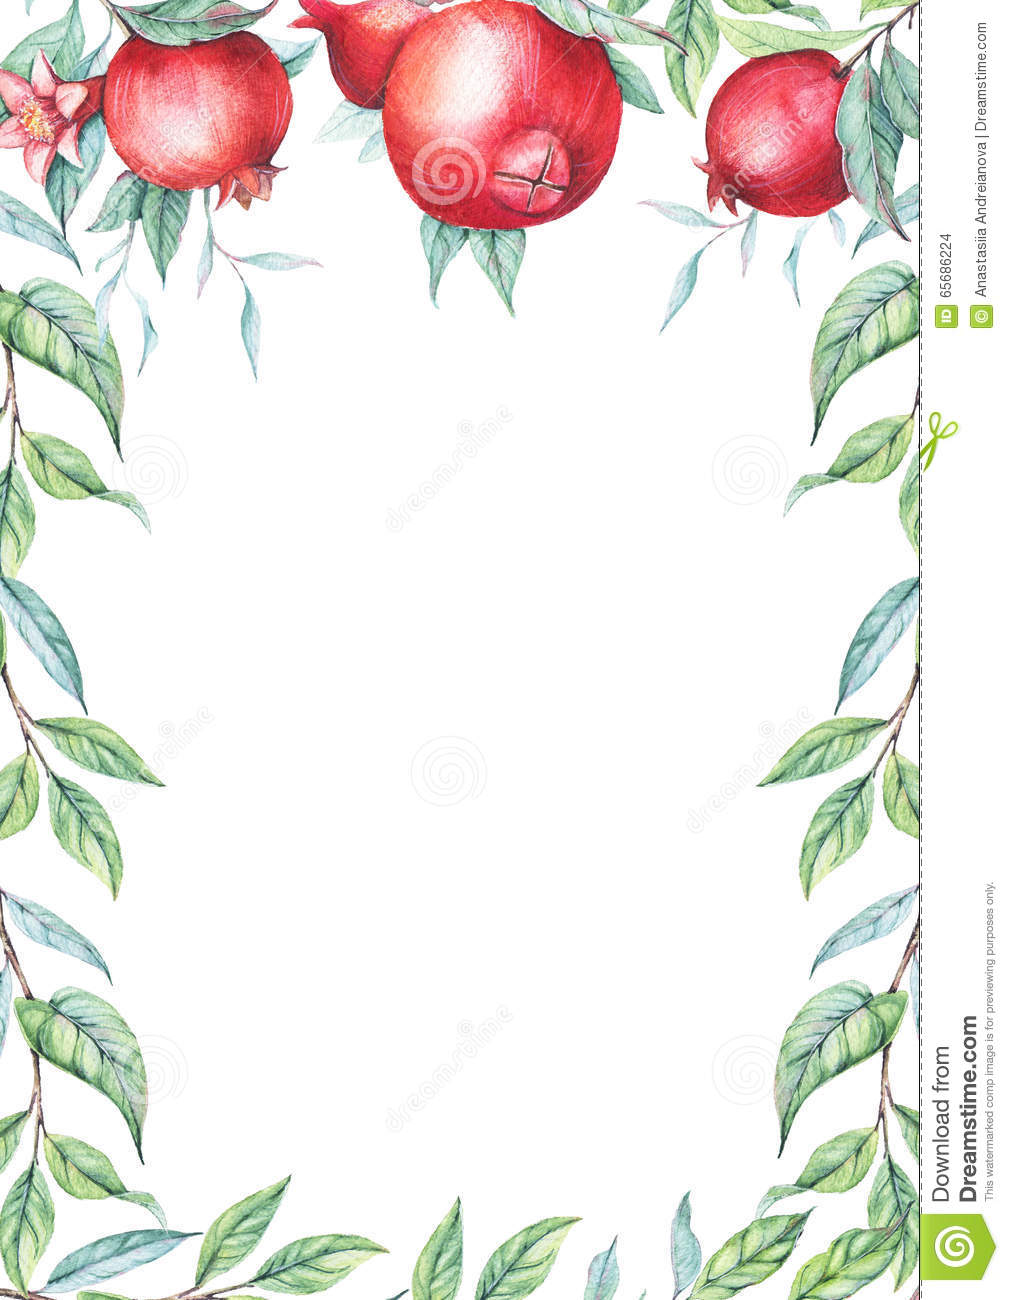 Watercolor Pomegranate (garnet) Border Stock Illustration ...